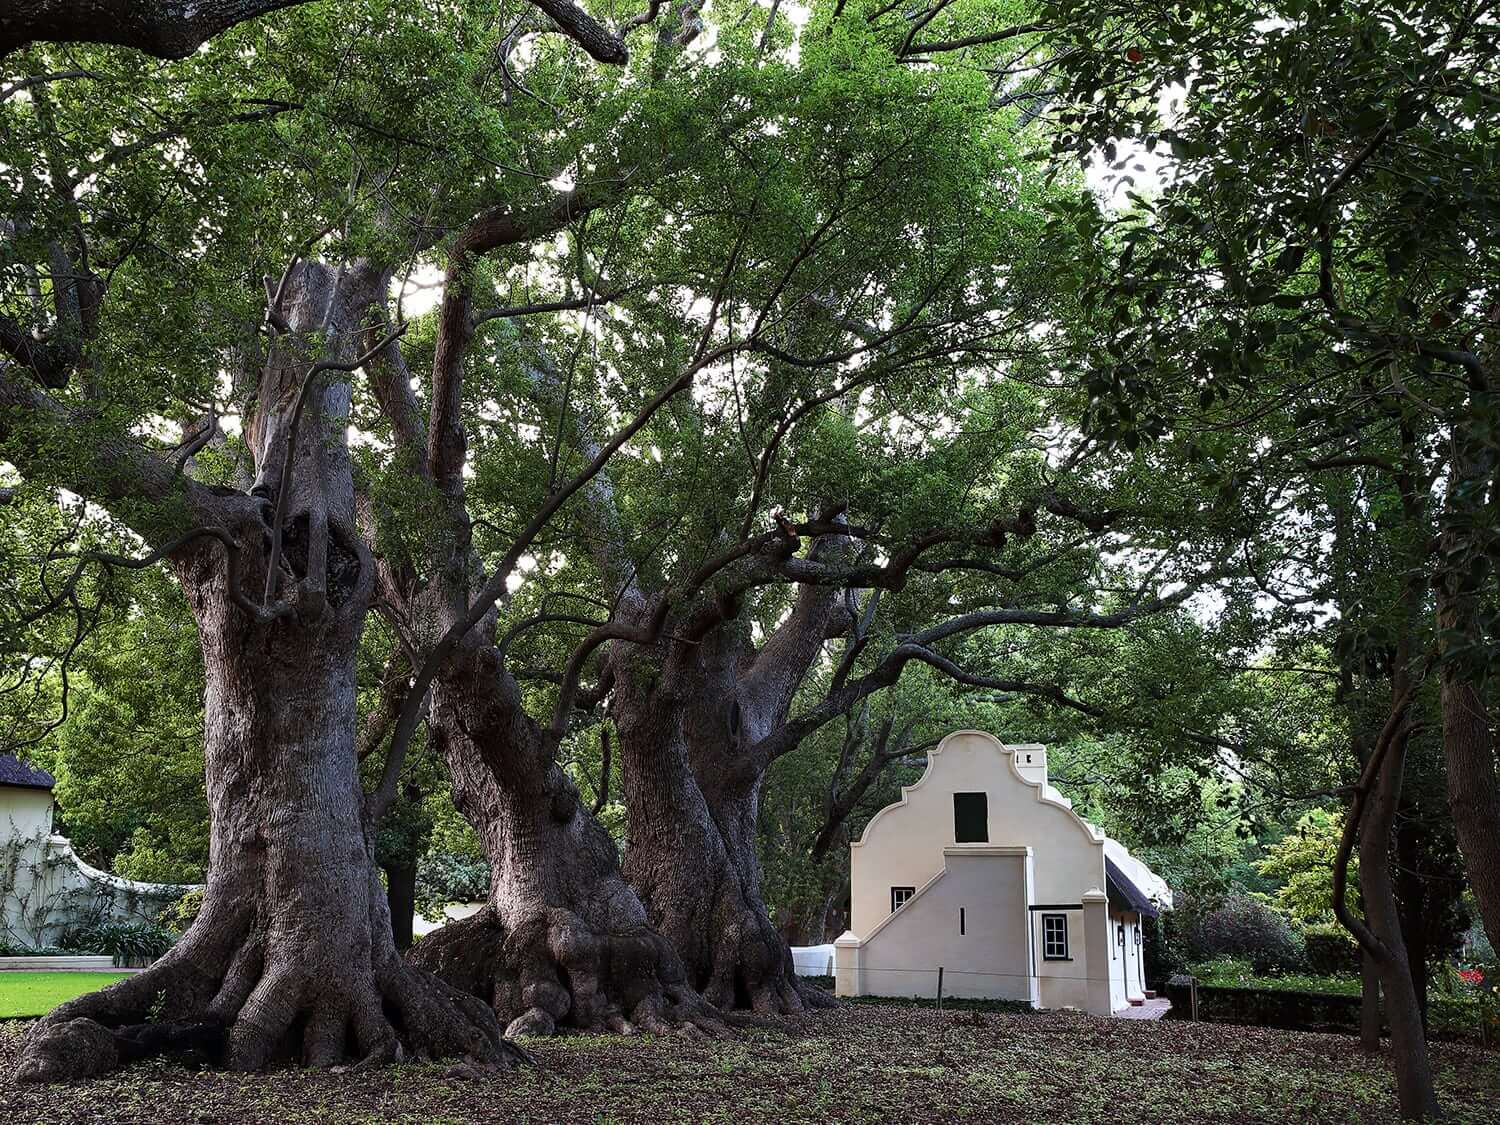 Traditional Cape Dutch building nestled in the trees at Vergelegen Wine Estate, South Africa.